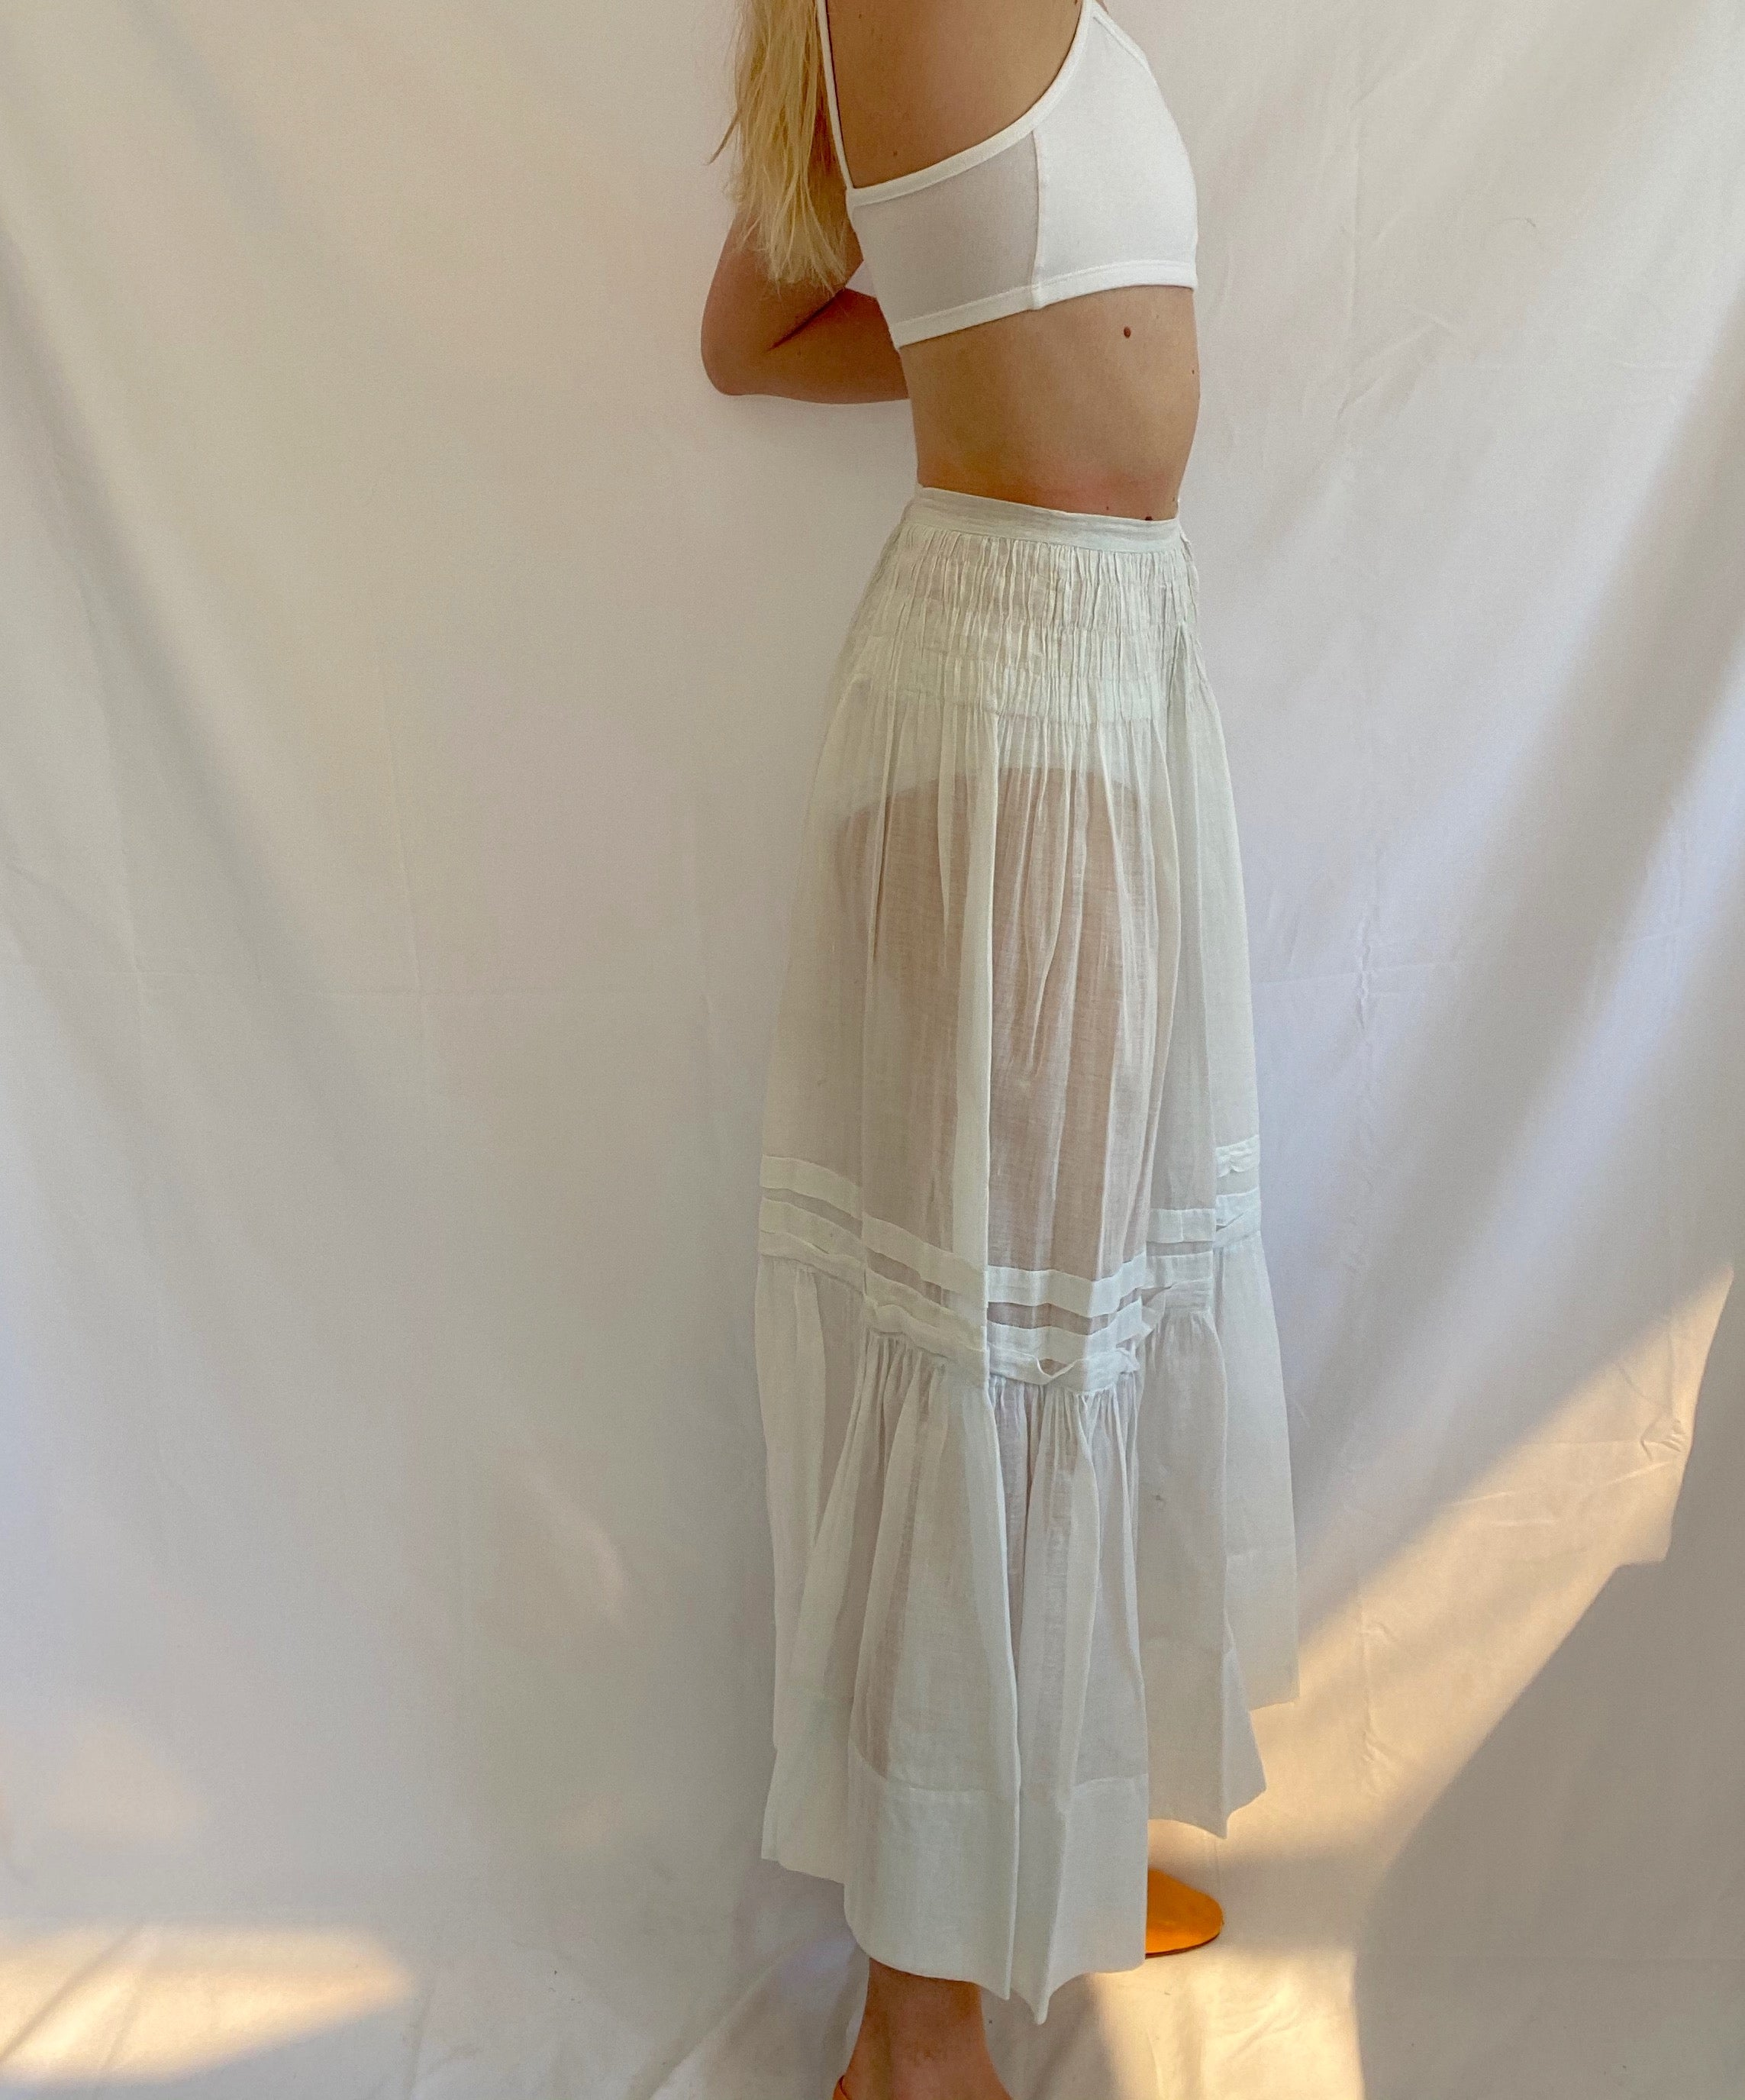 Pale Aqua Edwardian Skirt